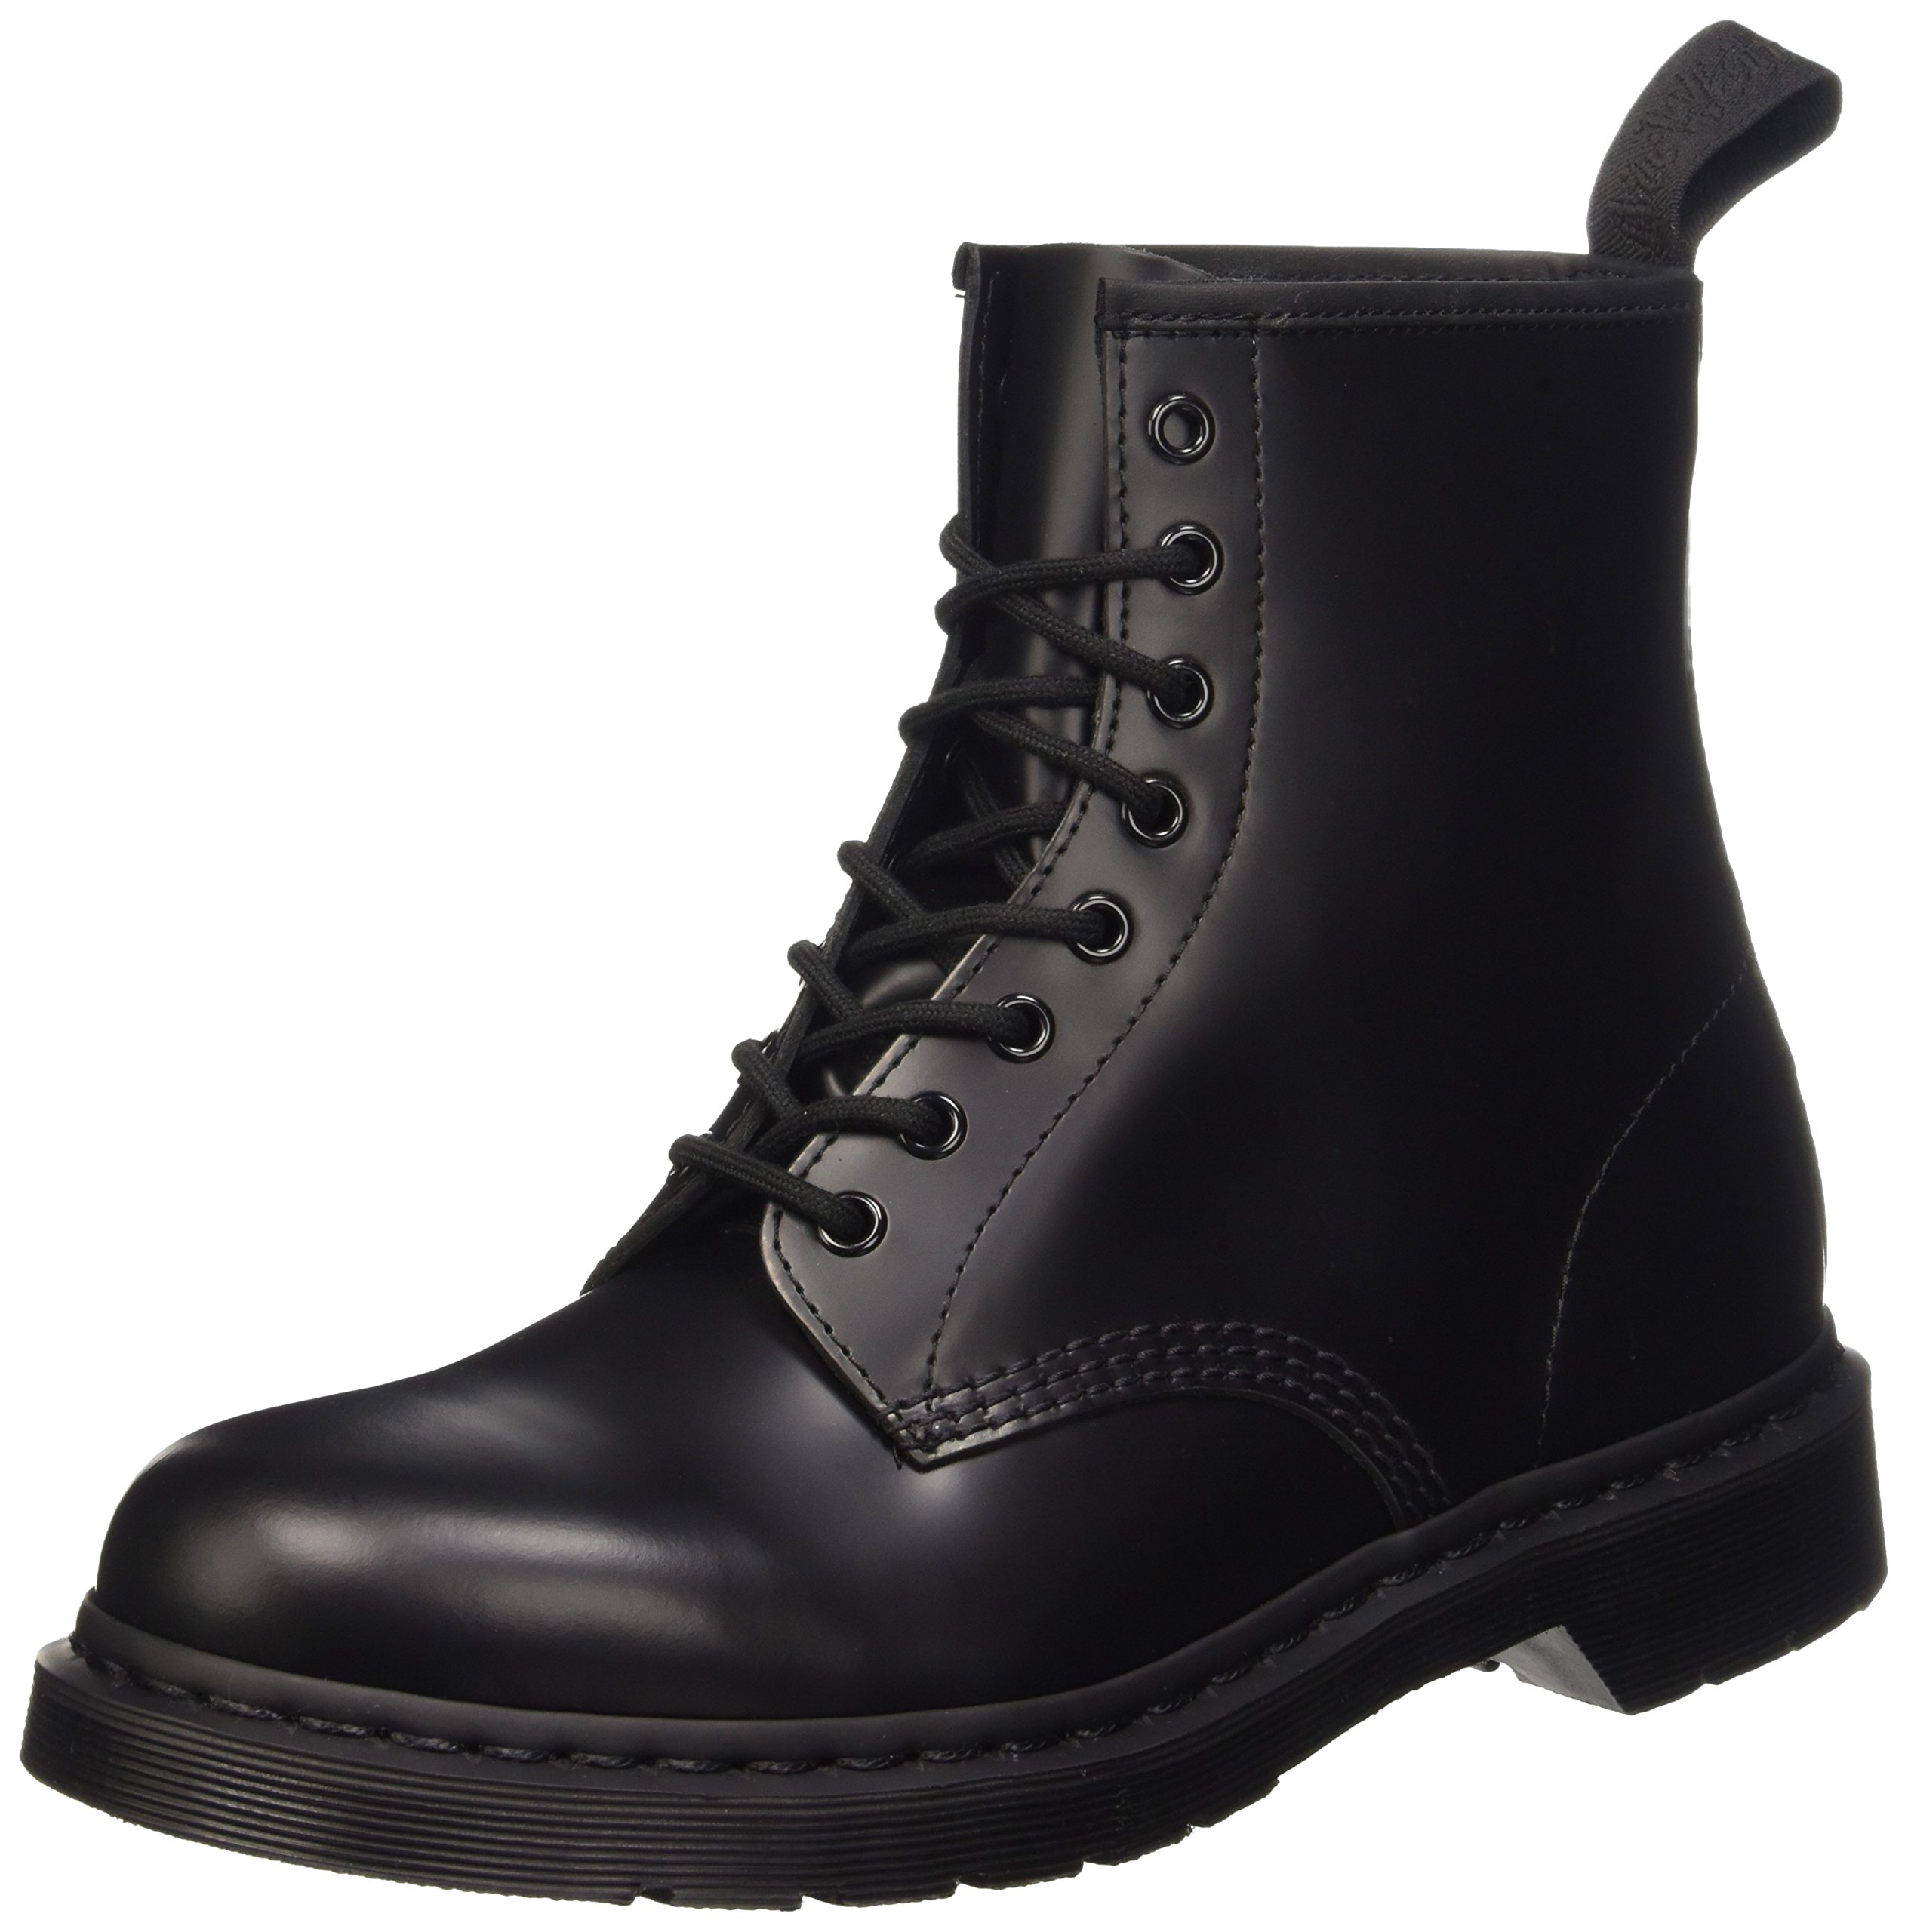 Dr. Martens Unisex 1460 8-Tie Lace-Up Boot,Black Smooth,UK 8 (US 9, 10) M US